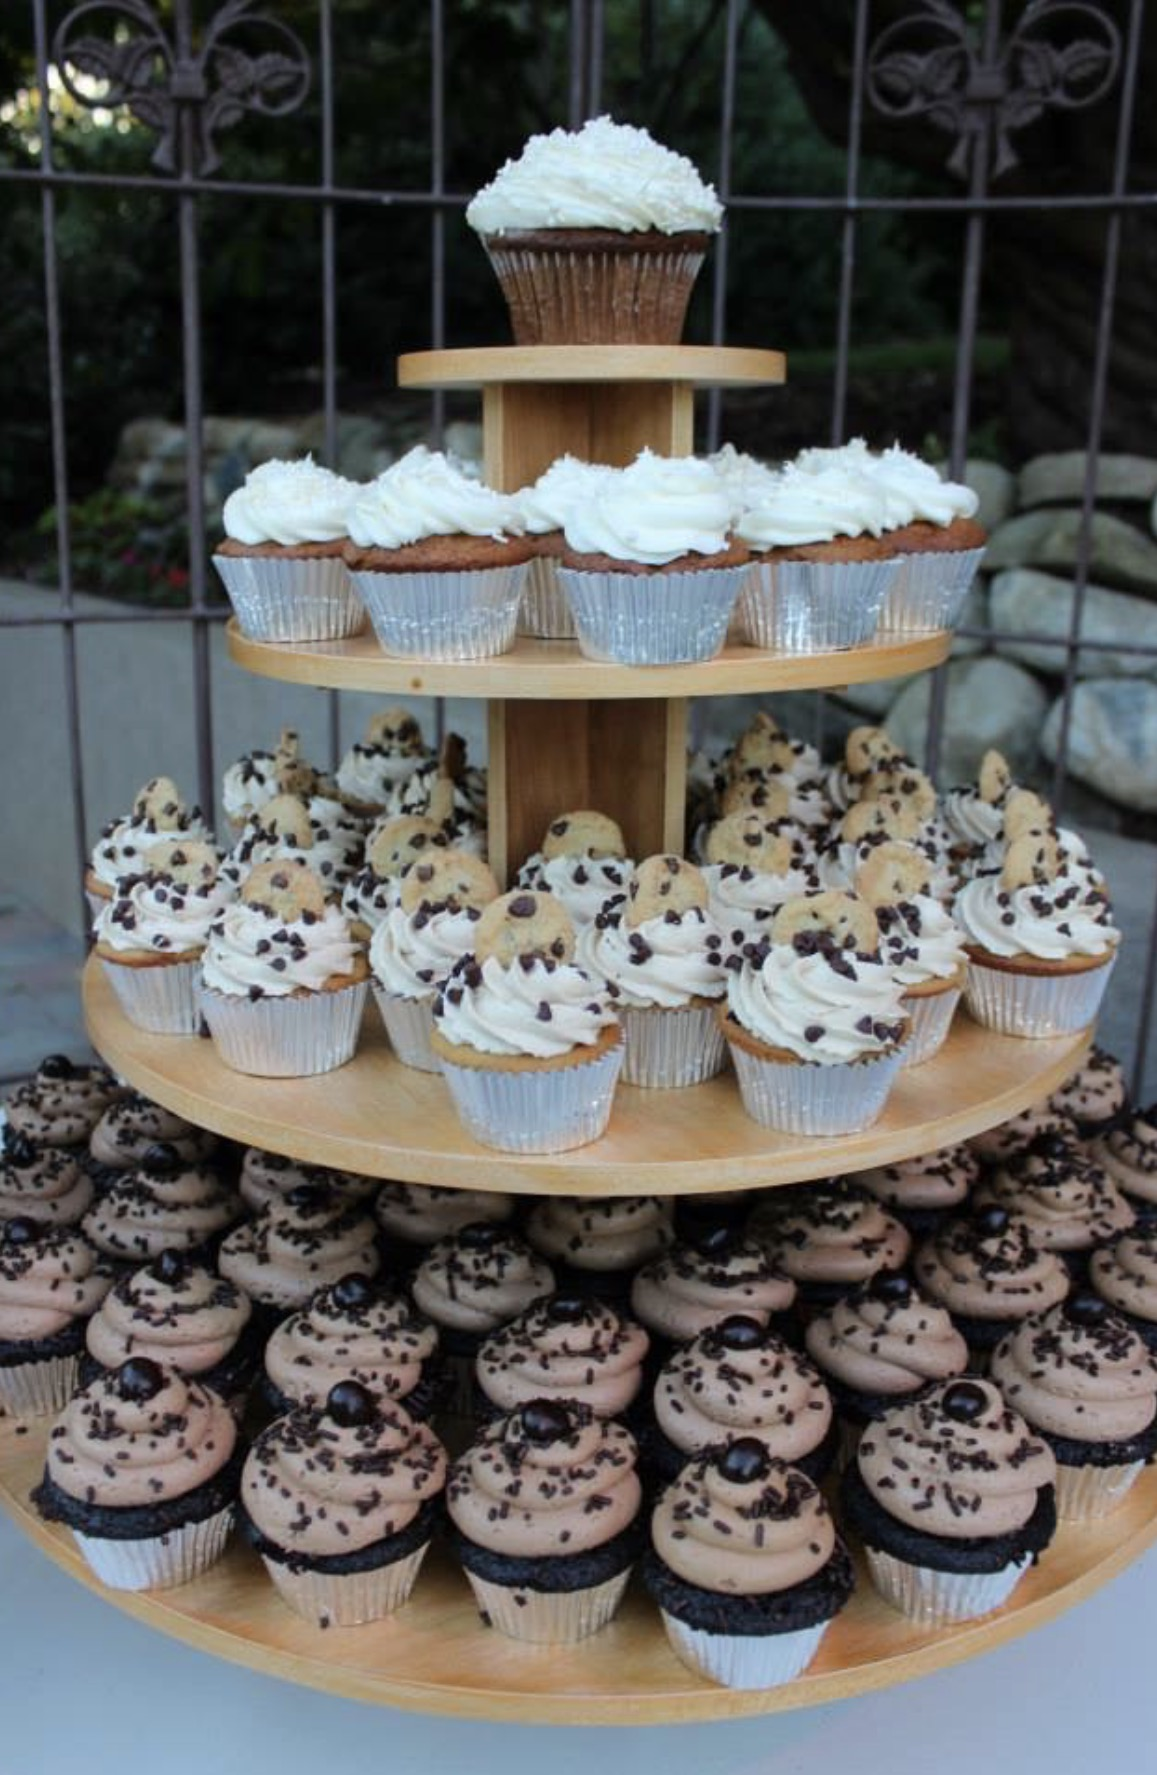 WOODEN CUPCAKE DISPLAY - $35